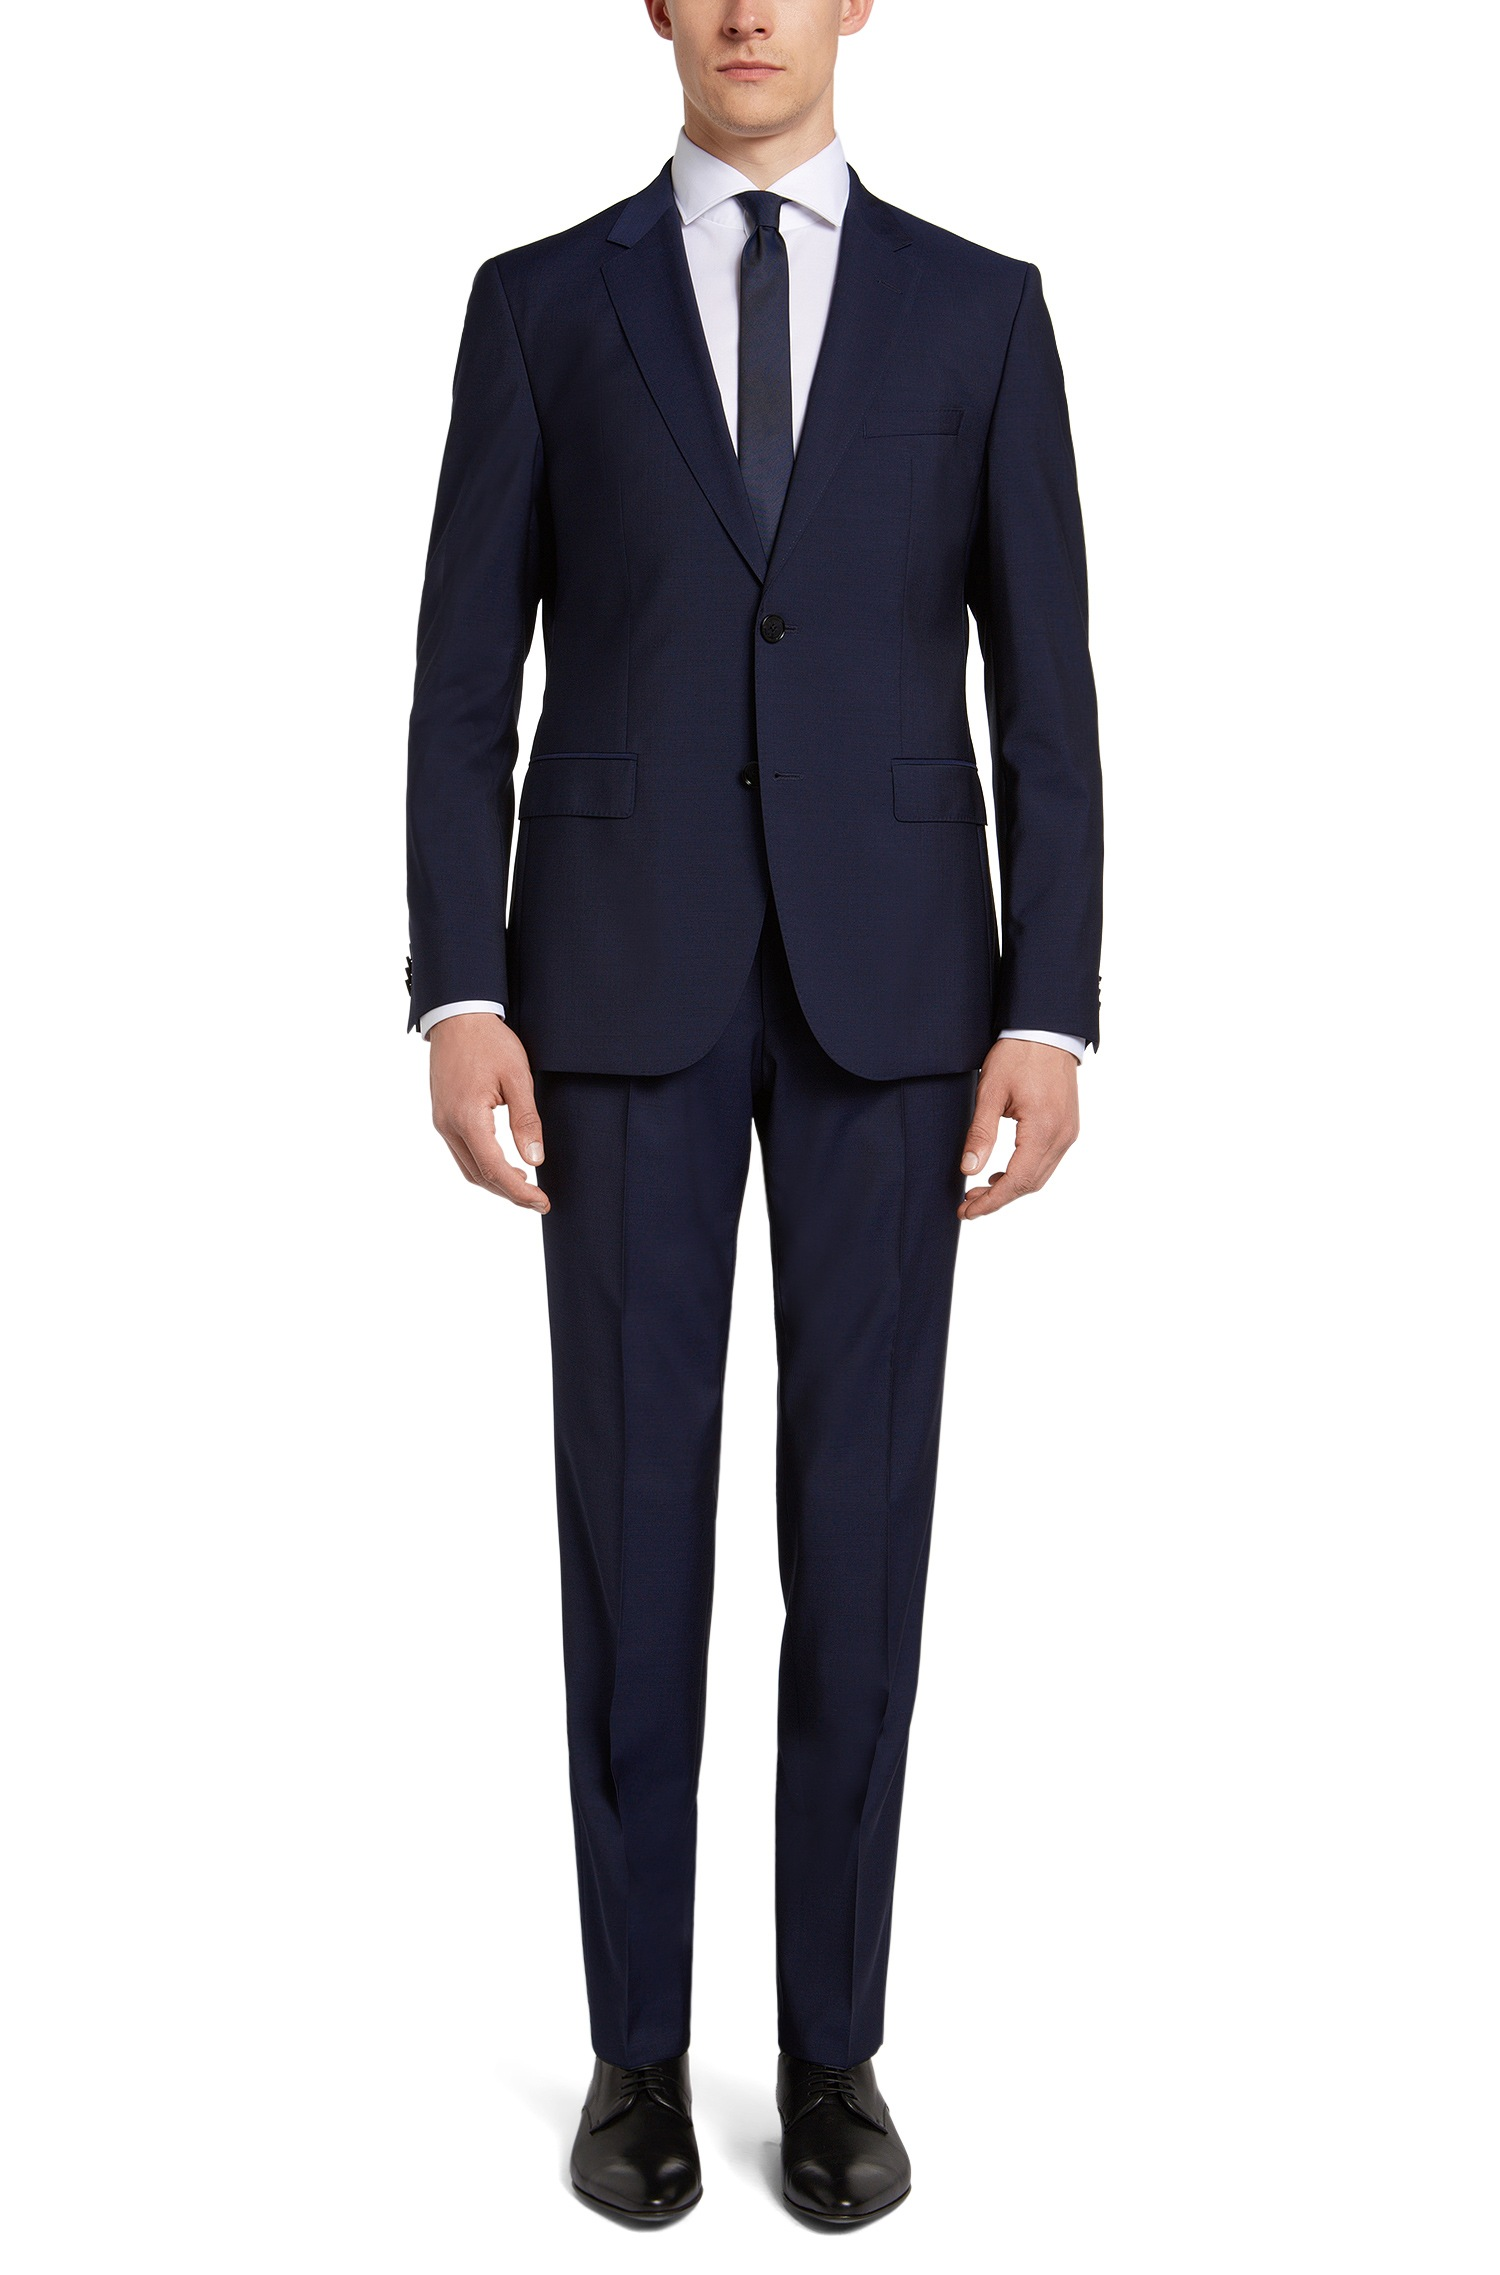 Abito uomo elegante Hugo Boss blu regular fit in lana vergine